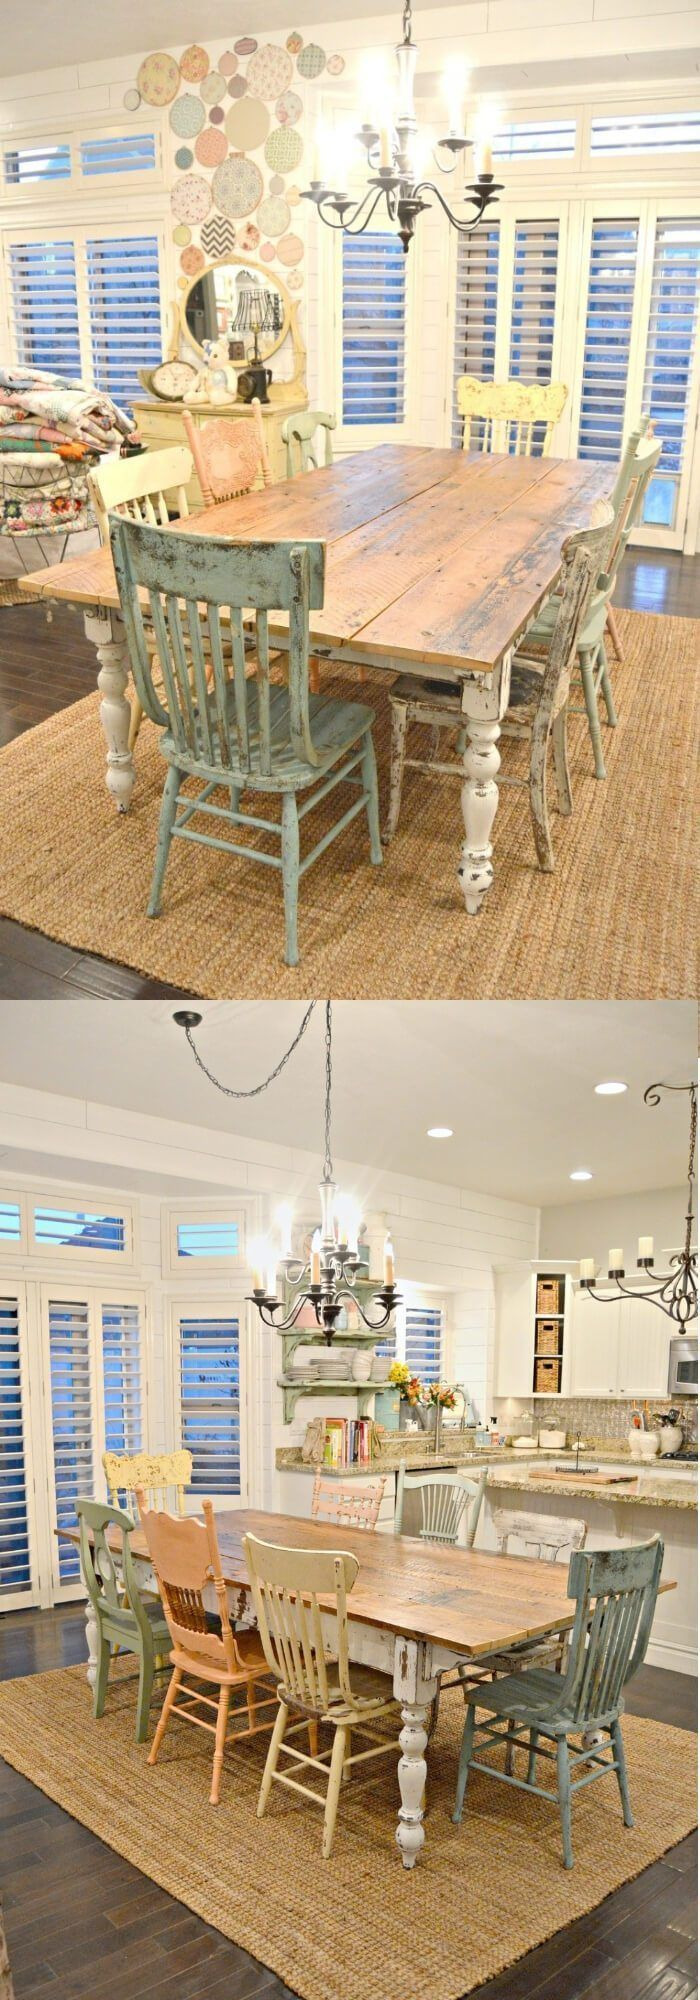 Most Popular Farmhouse Style Dining Room Design Ideas #dinningroom #Decorating #... - New house ,  #Decorating #Design #Dining #dinningroom #Farmhouse #house #Ideas #Popular #Room #style